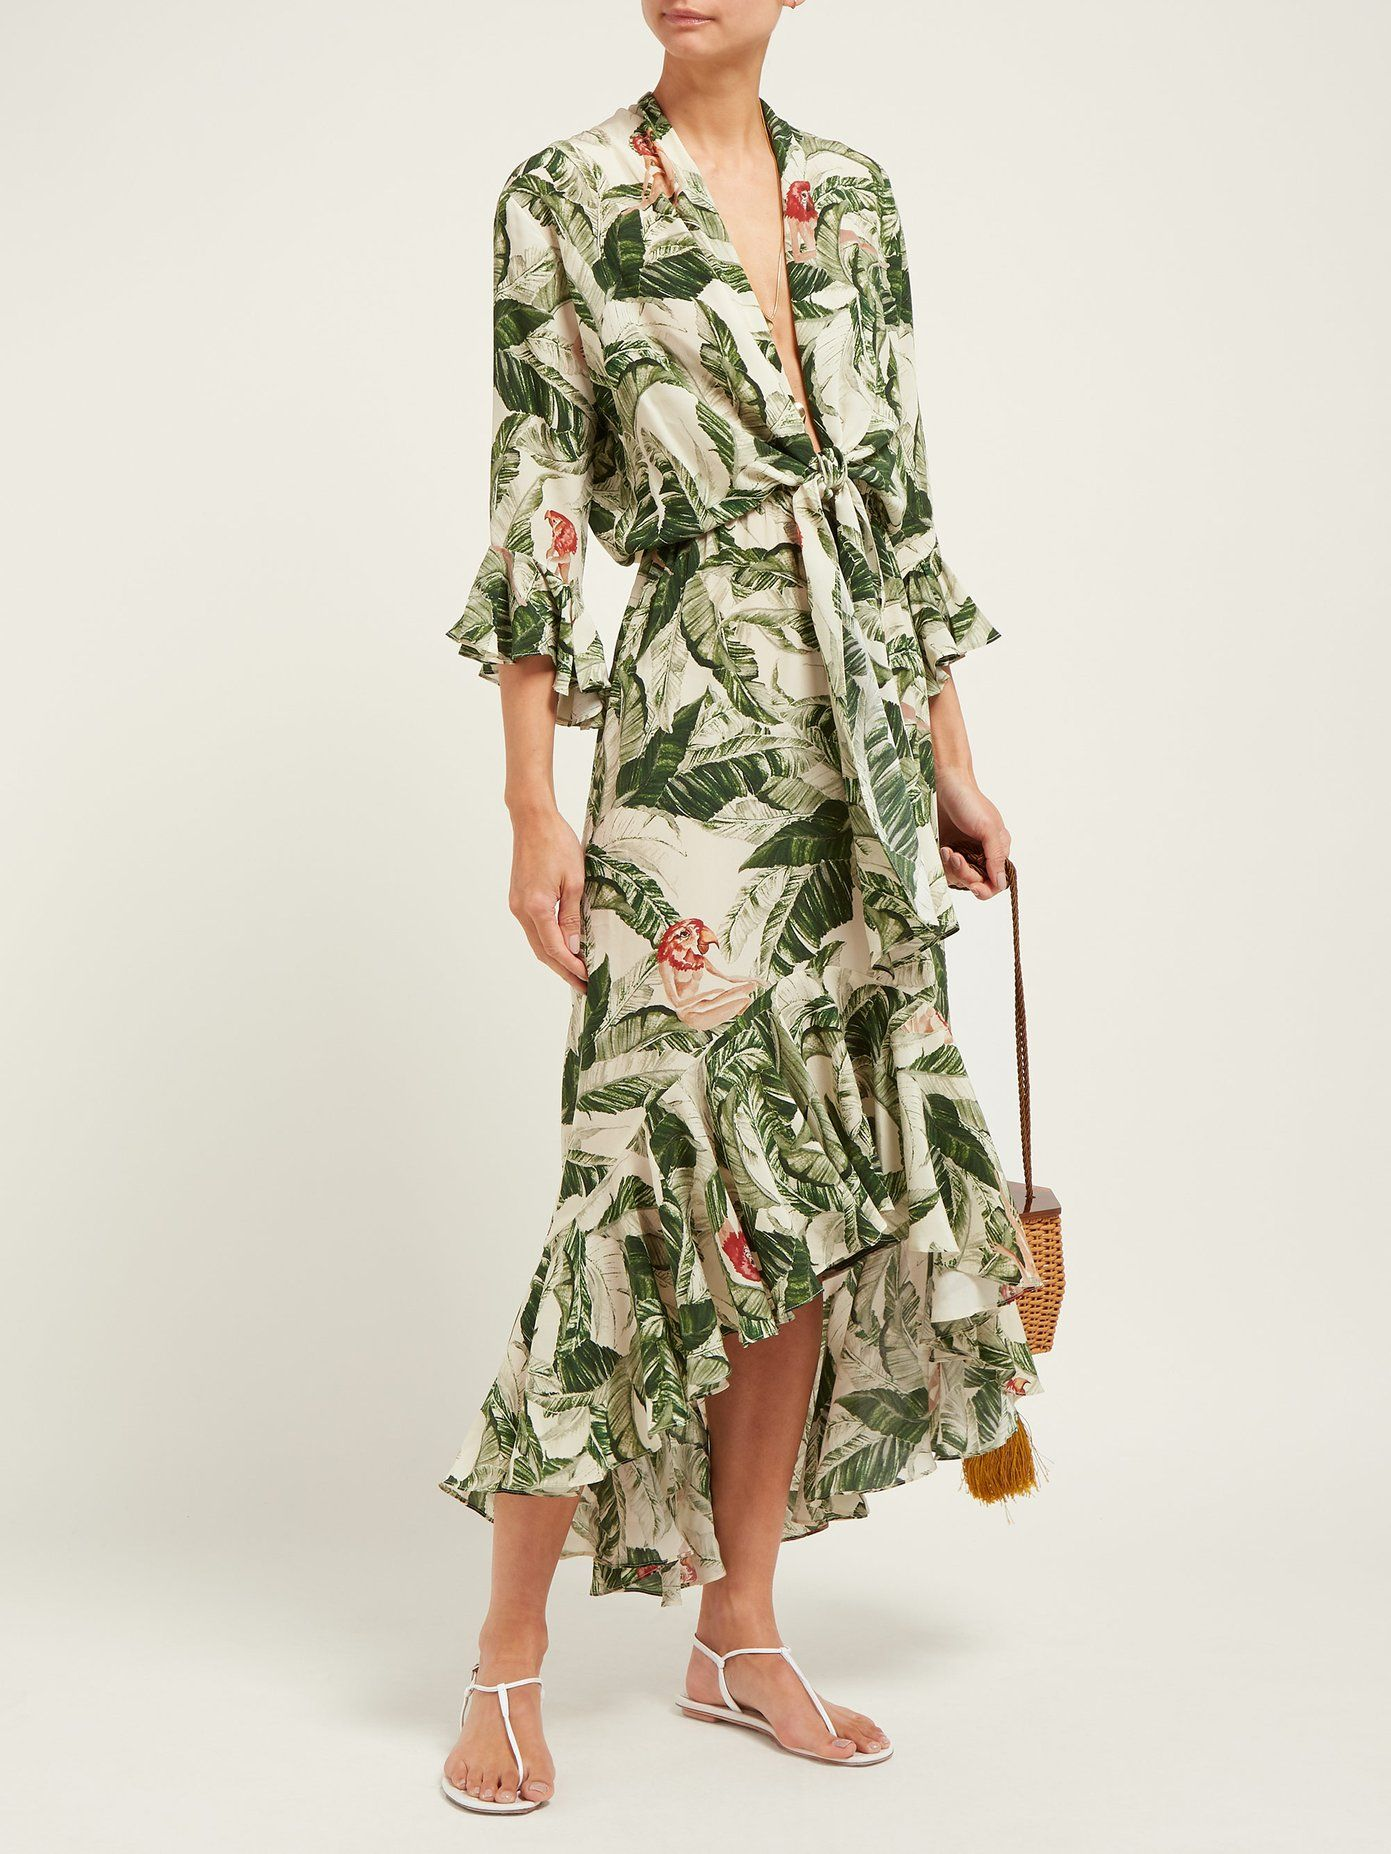 8dad9811a7 Tropical-print knotted silk dress | Adriana Degreas x Cult Gaia |  MATCHESFASHION.COM